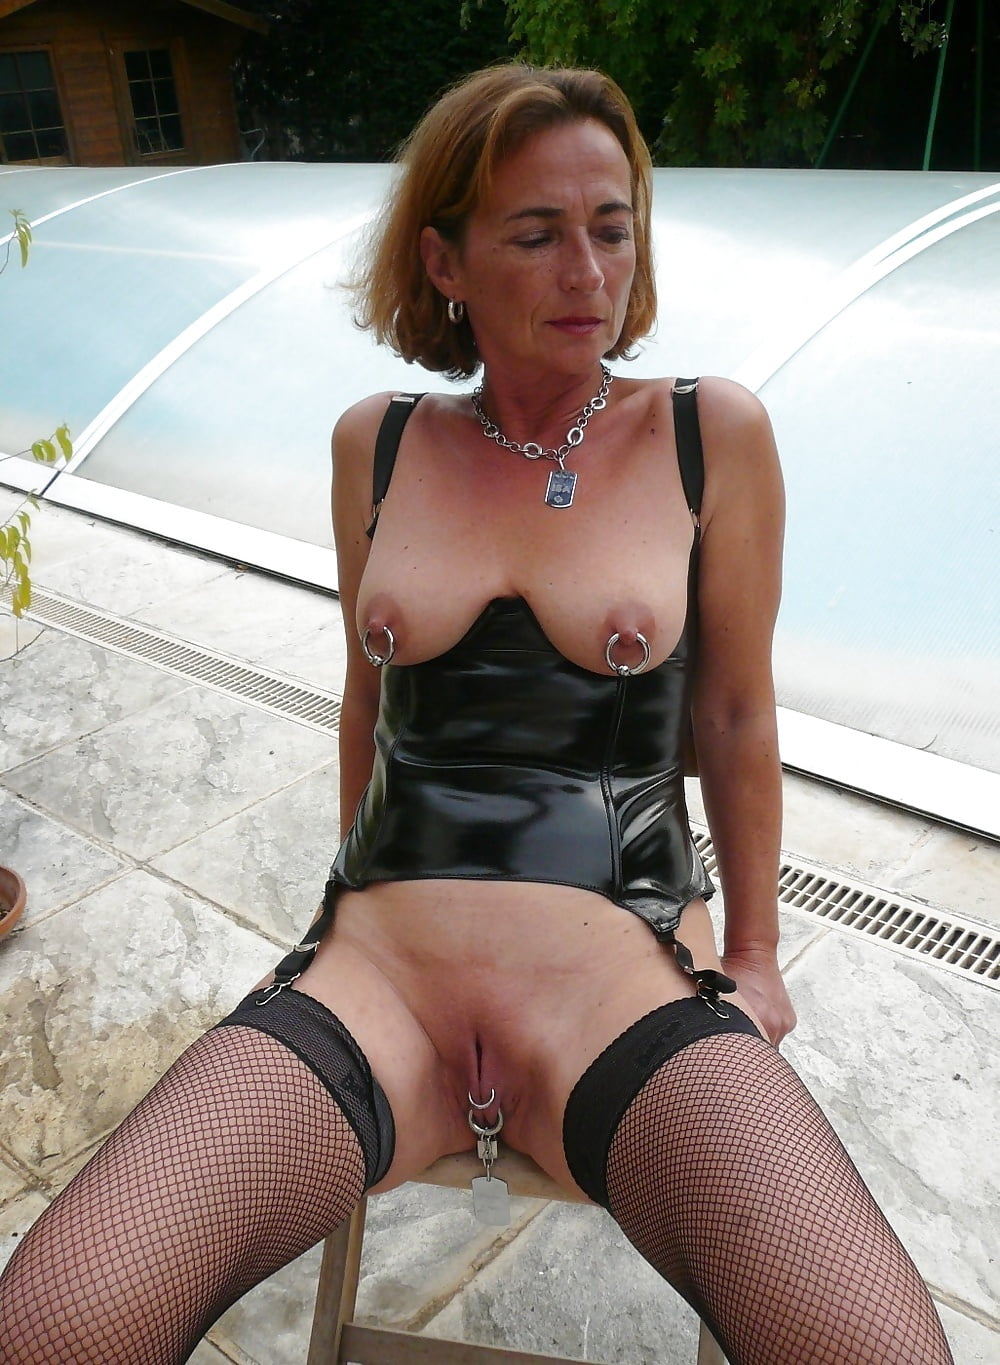 Amateur milf with pierced nipples gets fucked in her corset